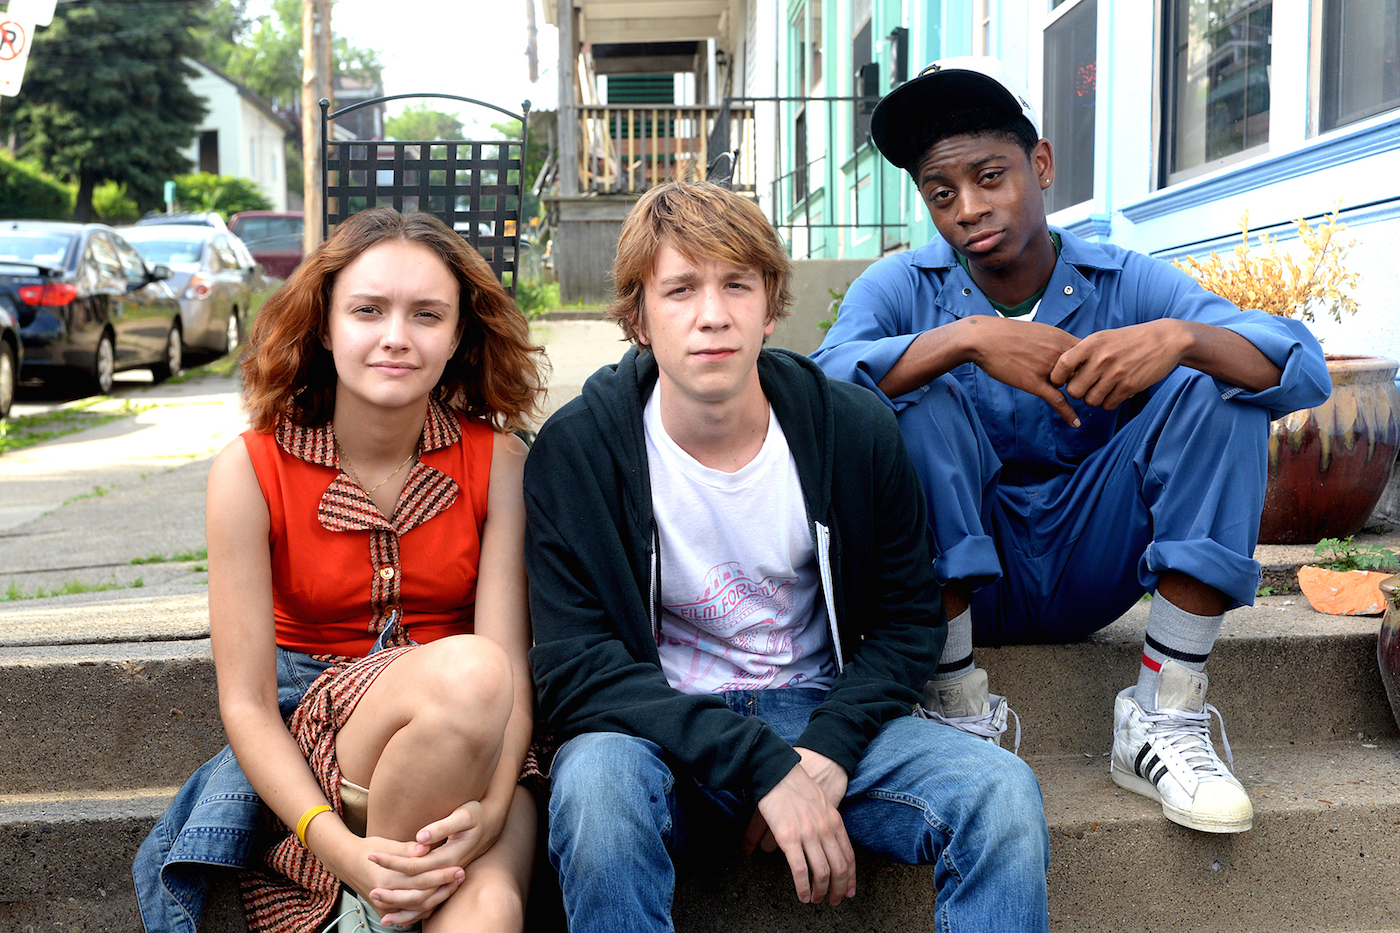 Pourquoi s'intéresser au grand gagnant de Sundance 2015, «Me and Earl and the Dying Girl»?